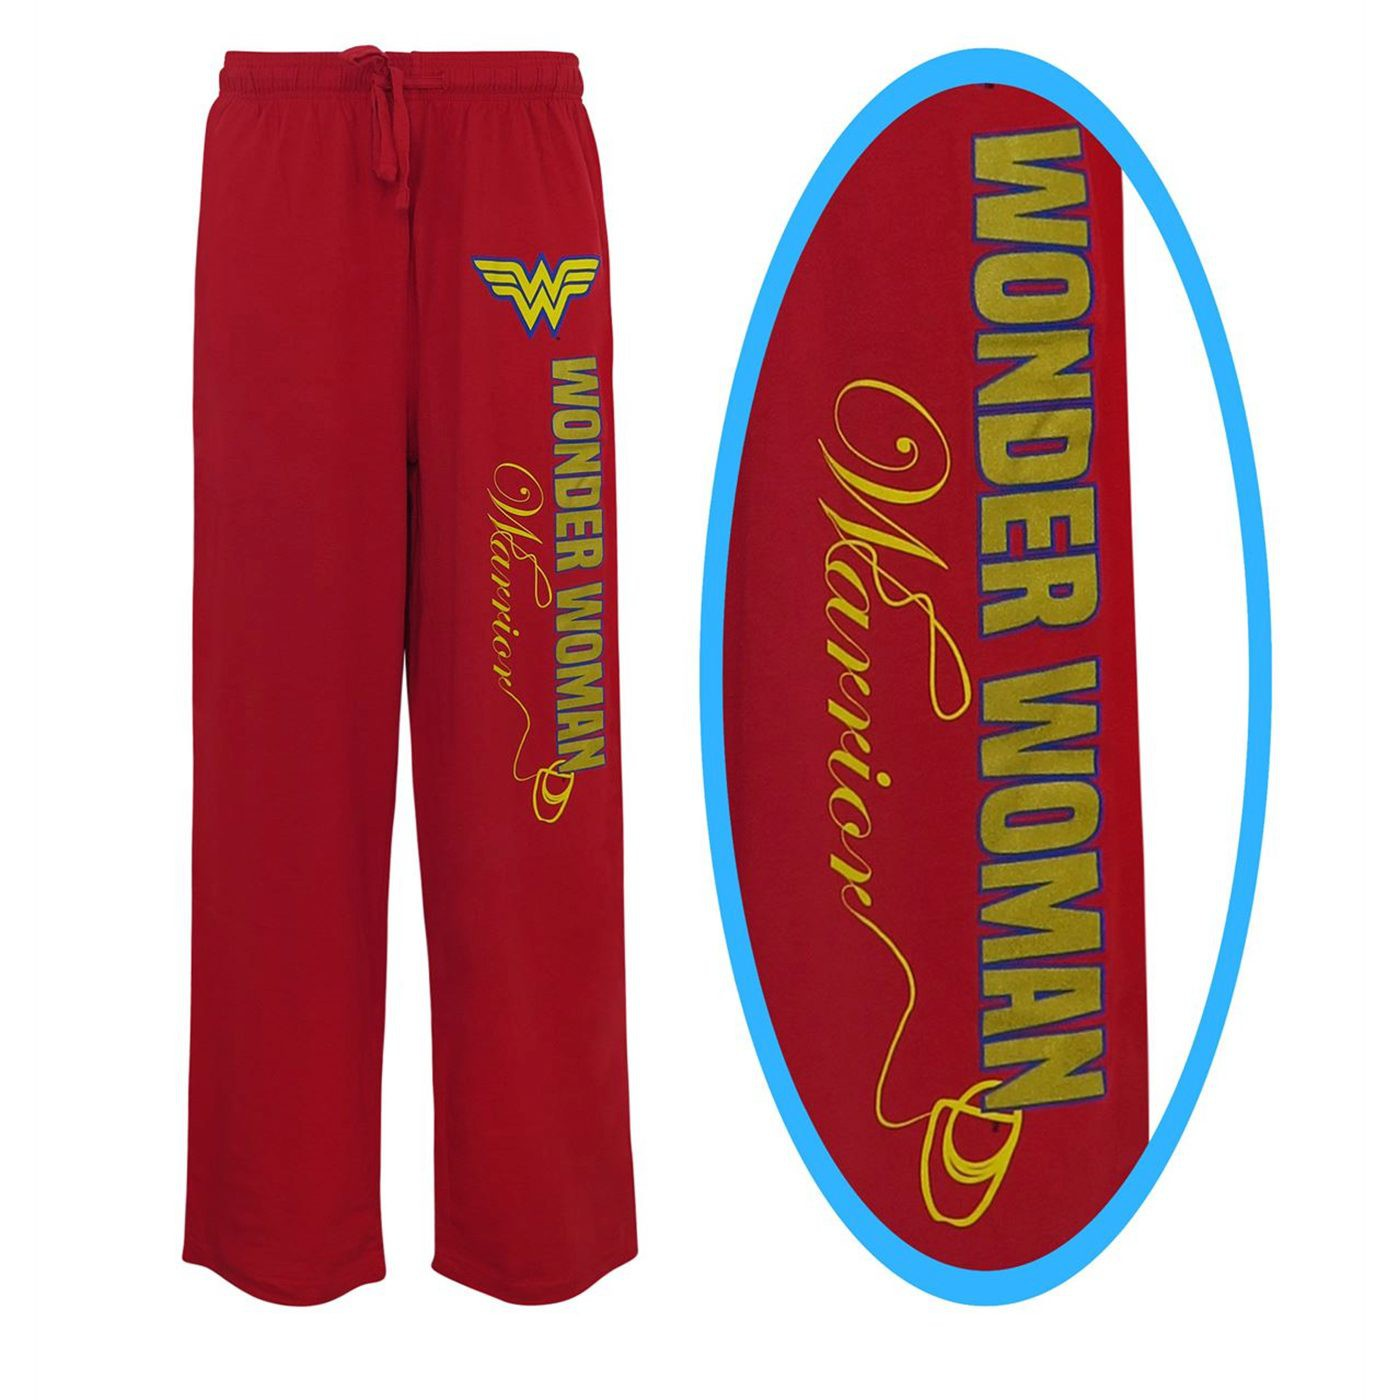 Pantaloni Wonder Woman da uomo